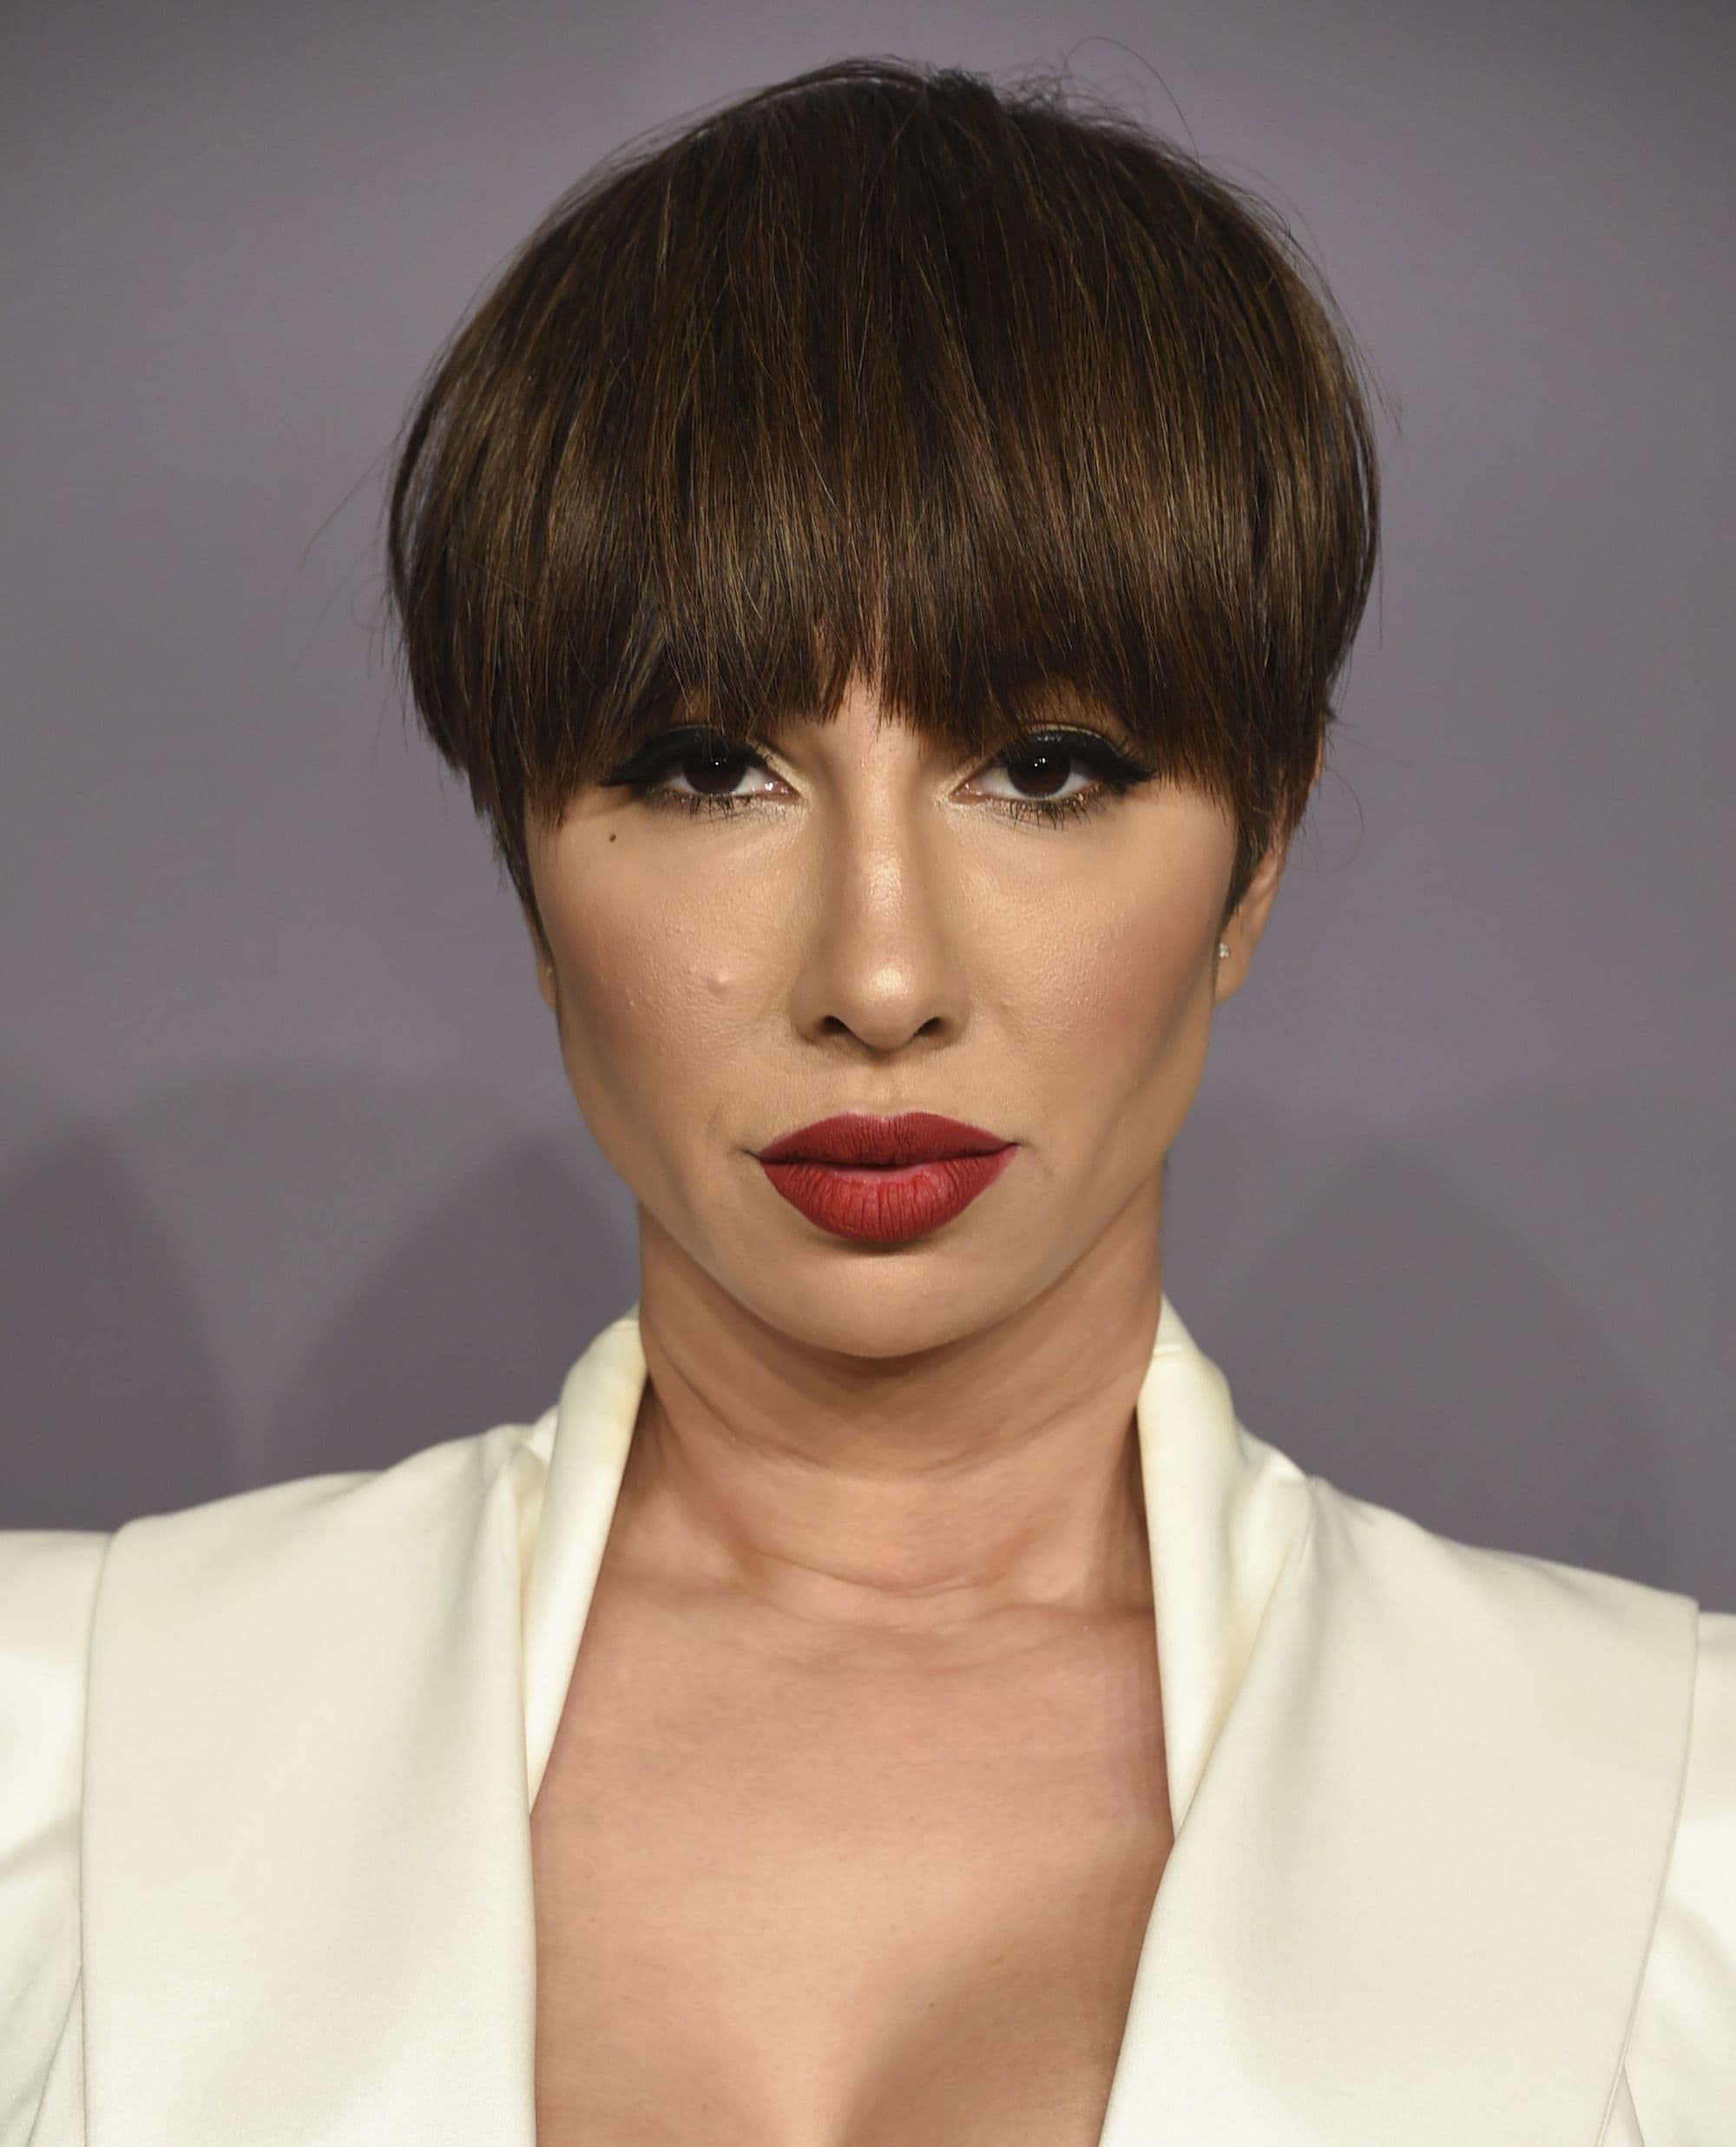 close up shot of jackie cruz with thick bangs and pixie haircut, wearing all white and red lipstick